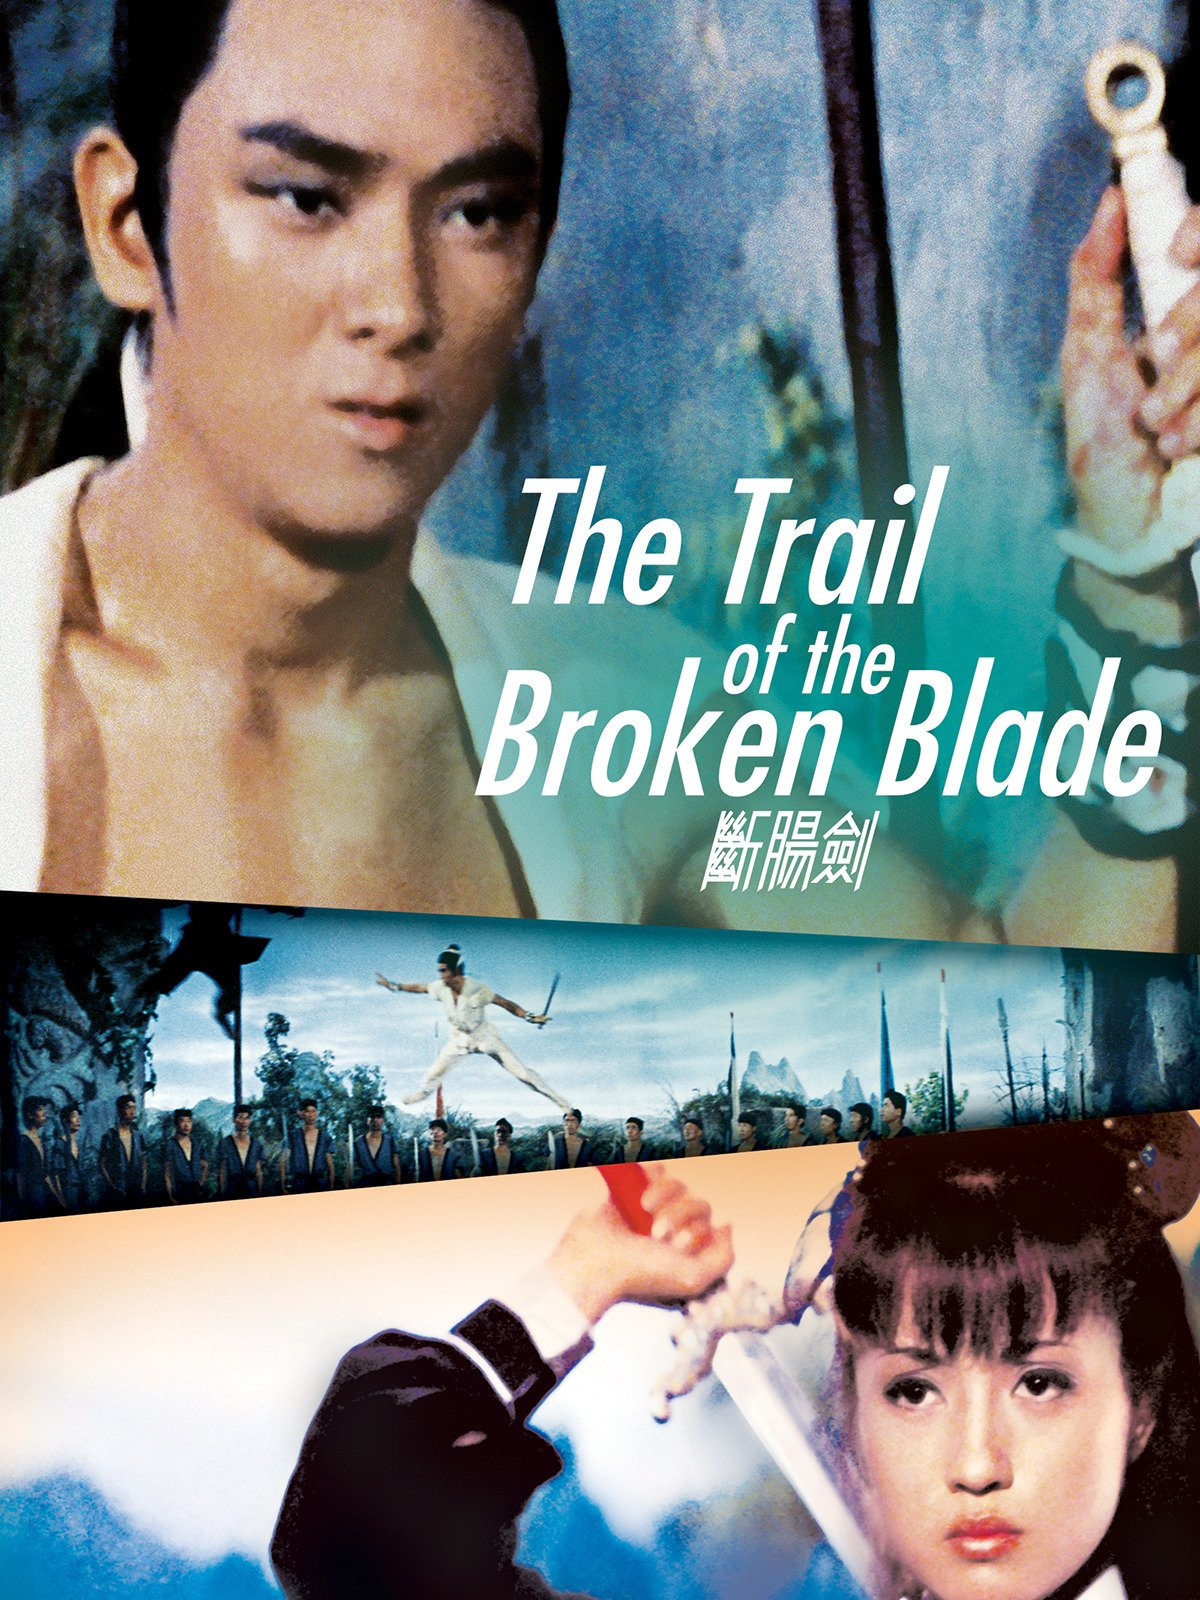 The Trail Of The Broken Blade